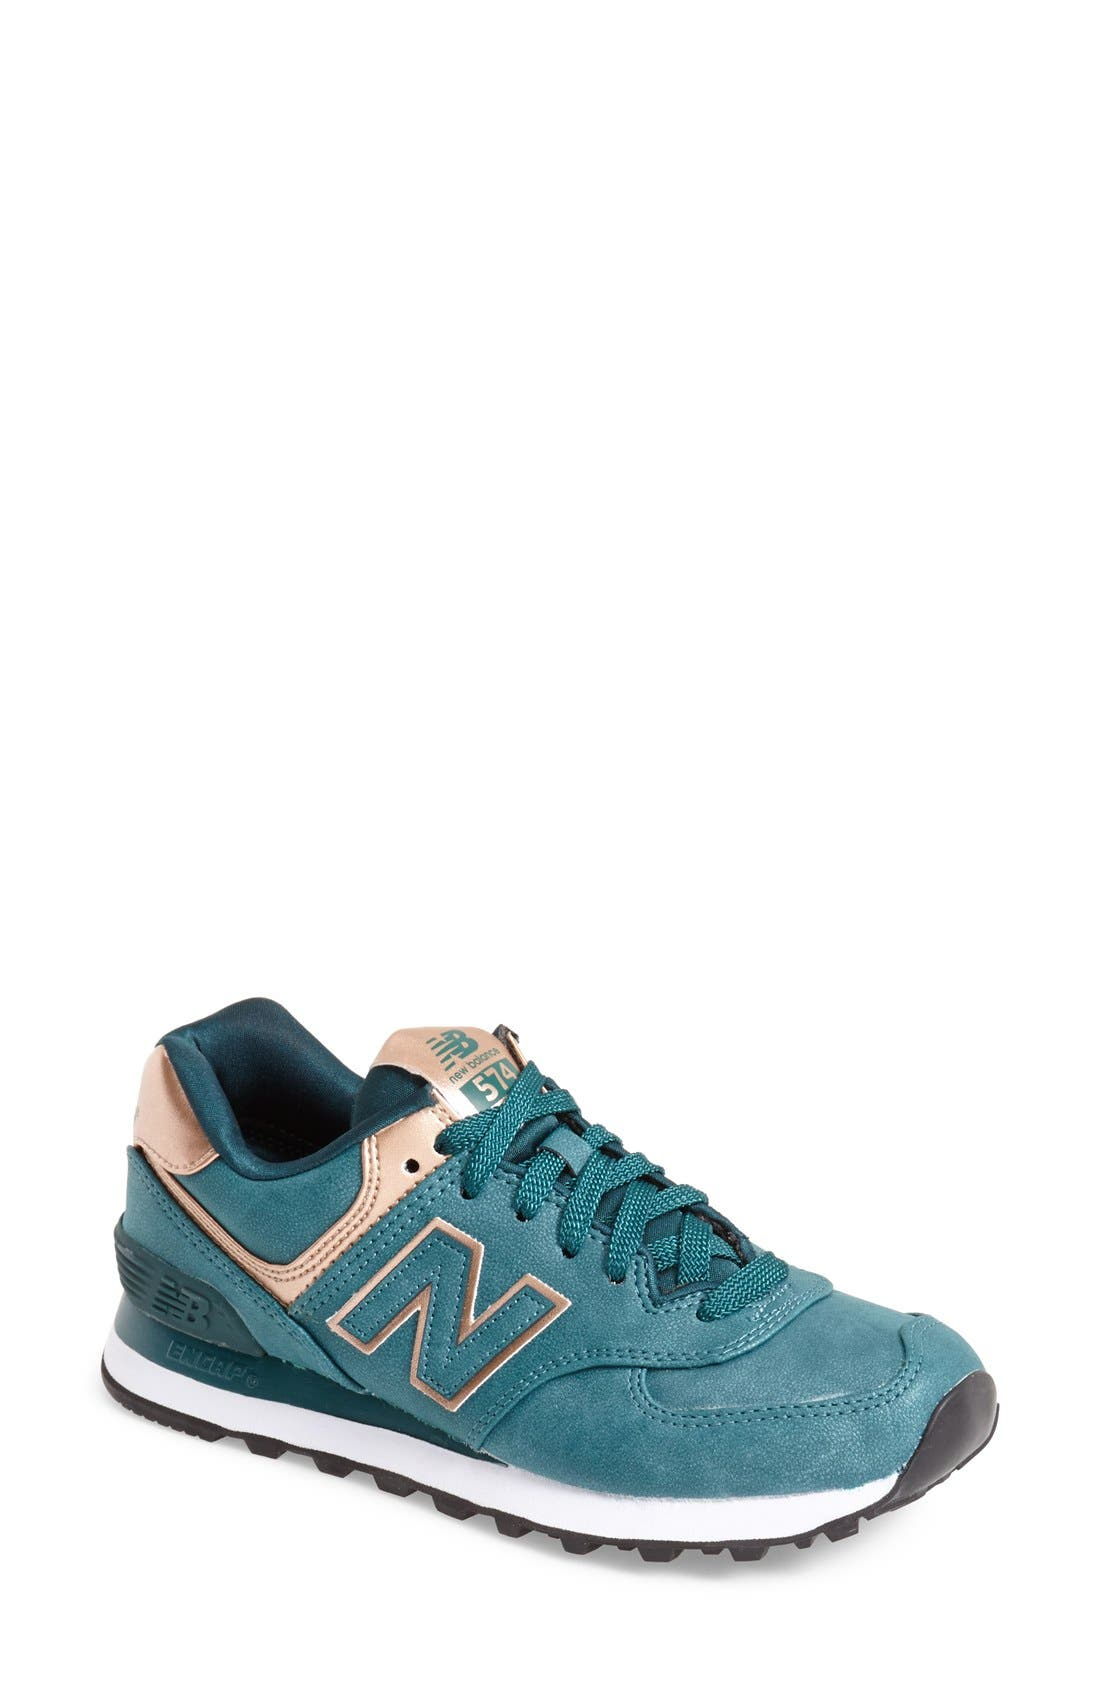 Alternate Image 1 Selected - New Balance '574 - Precious Metals' Sneaker (Women)